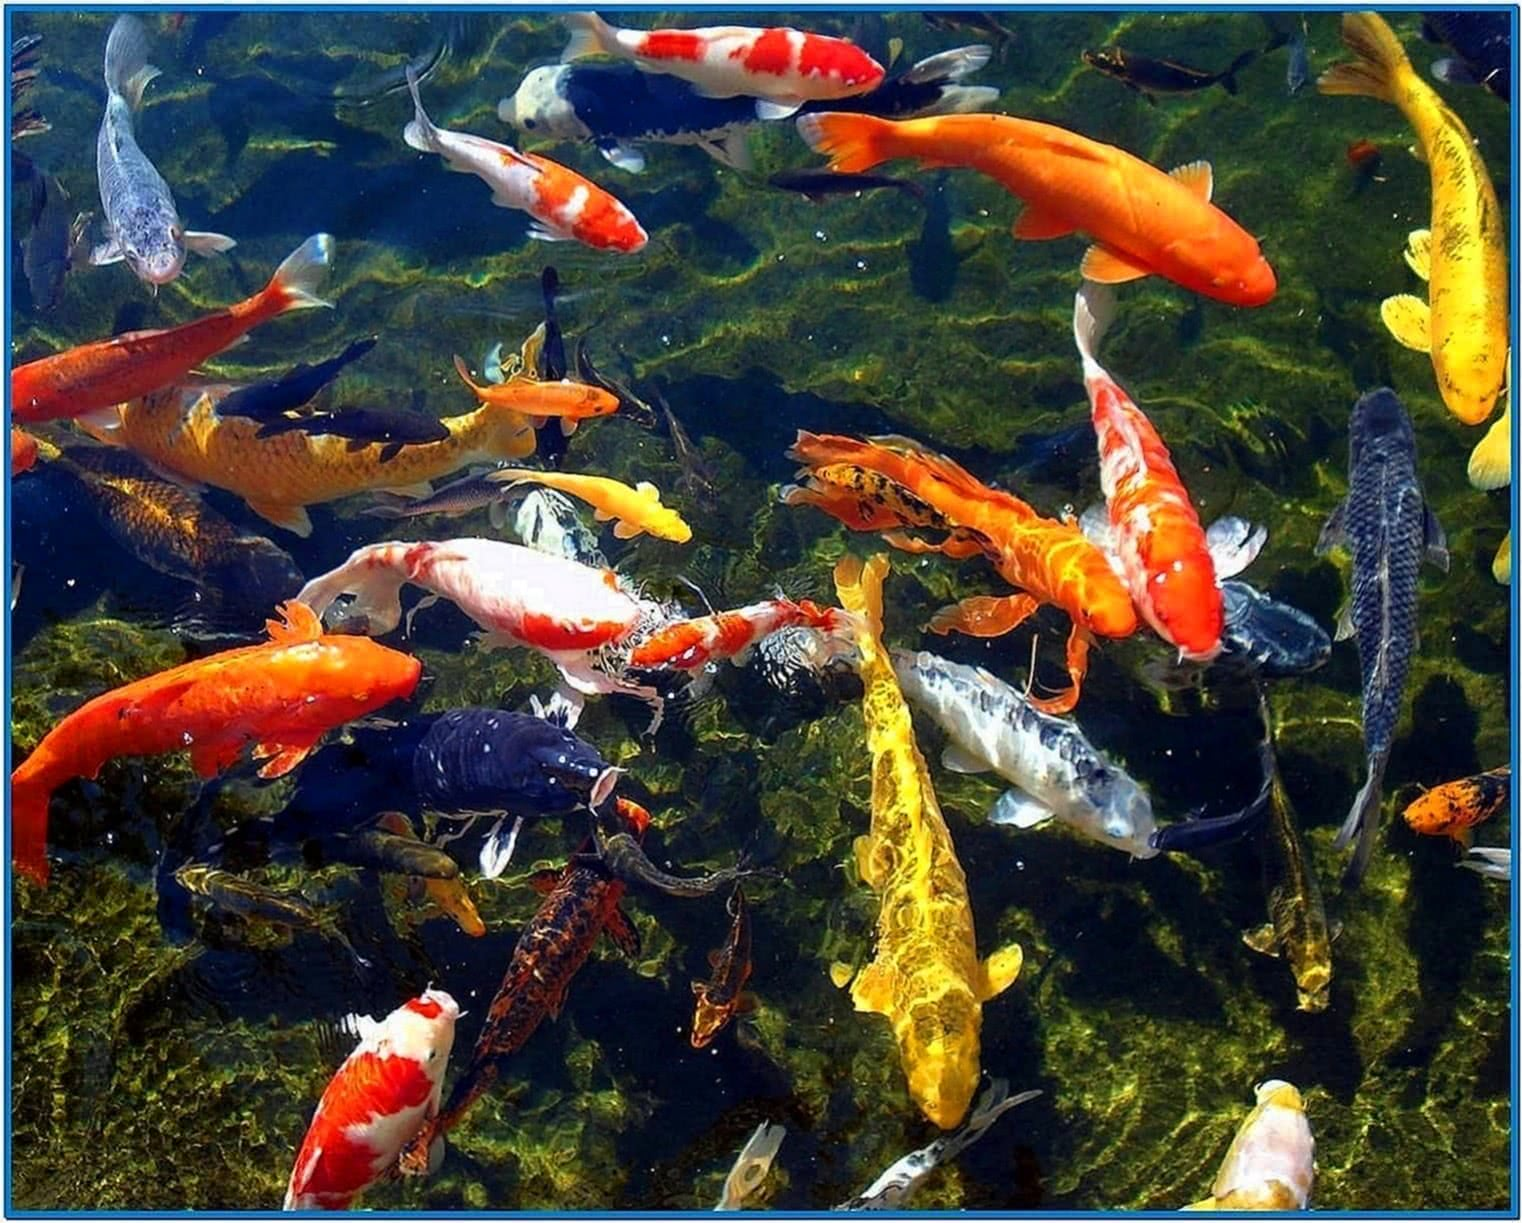 Koi Fish Pond Screensaver